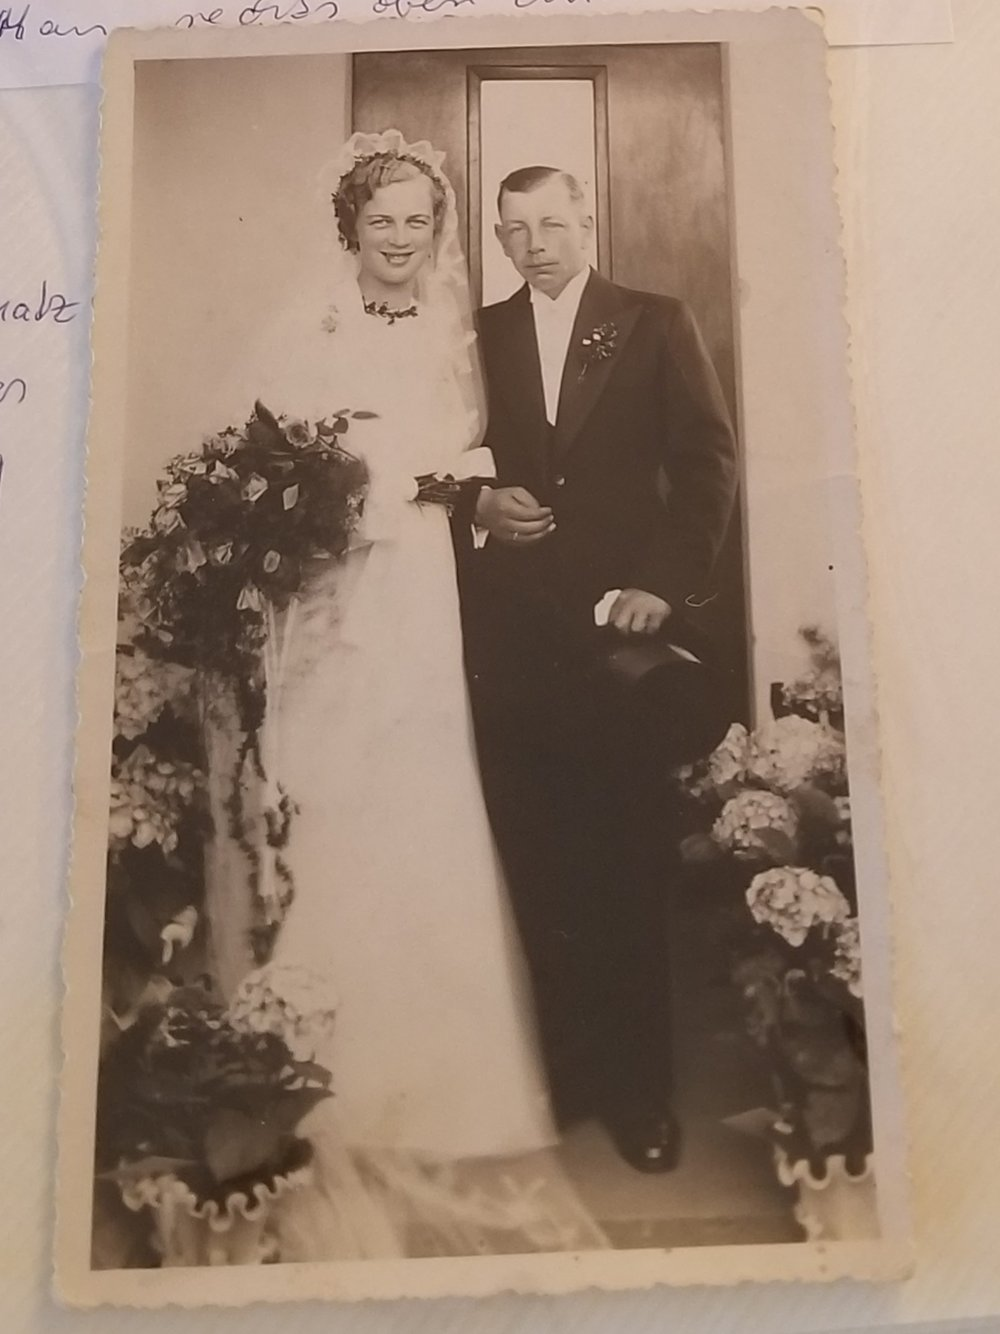 My great-grandparents Irmgard and Willi Labes on their wedding day in March 1939.